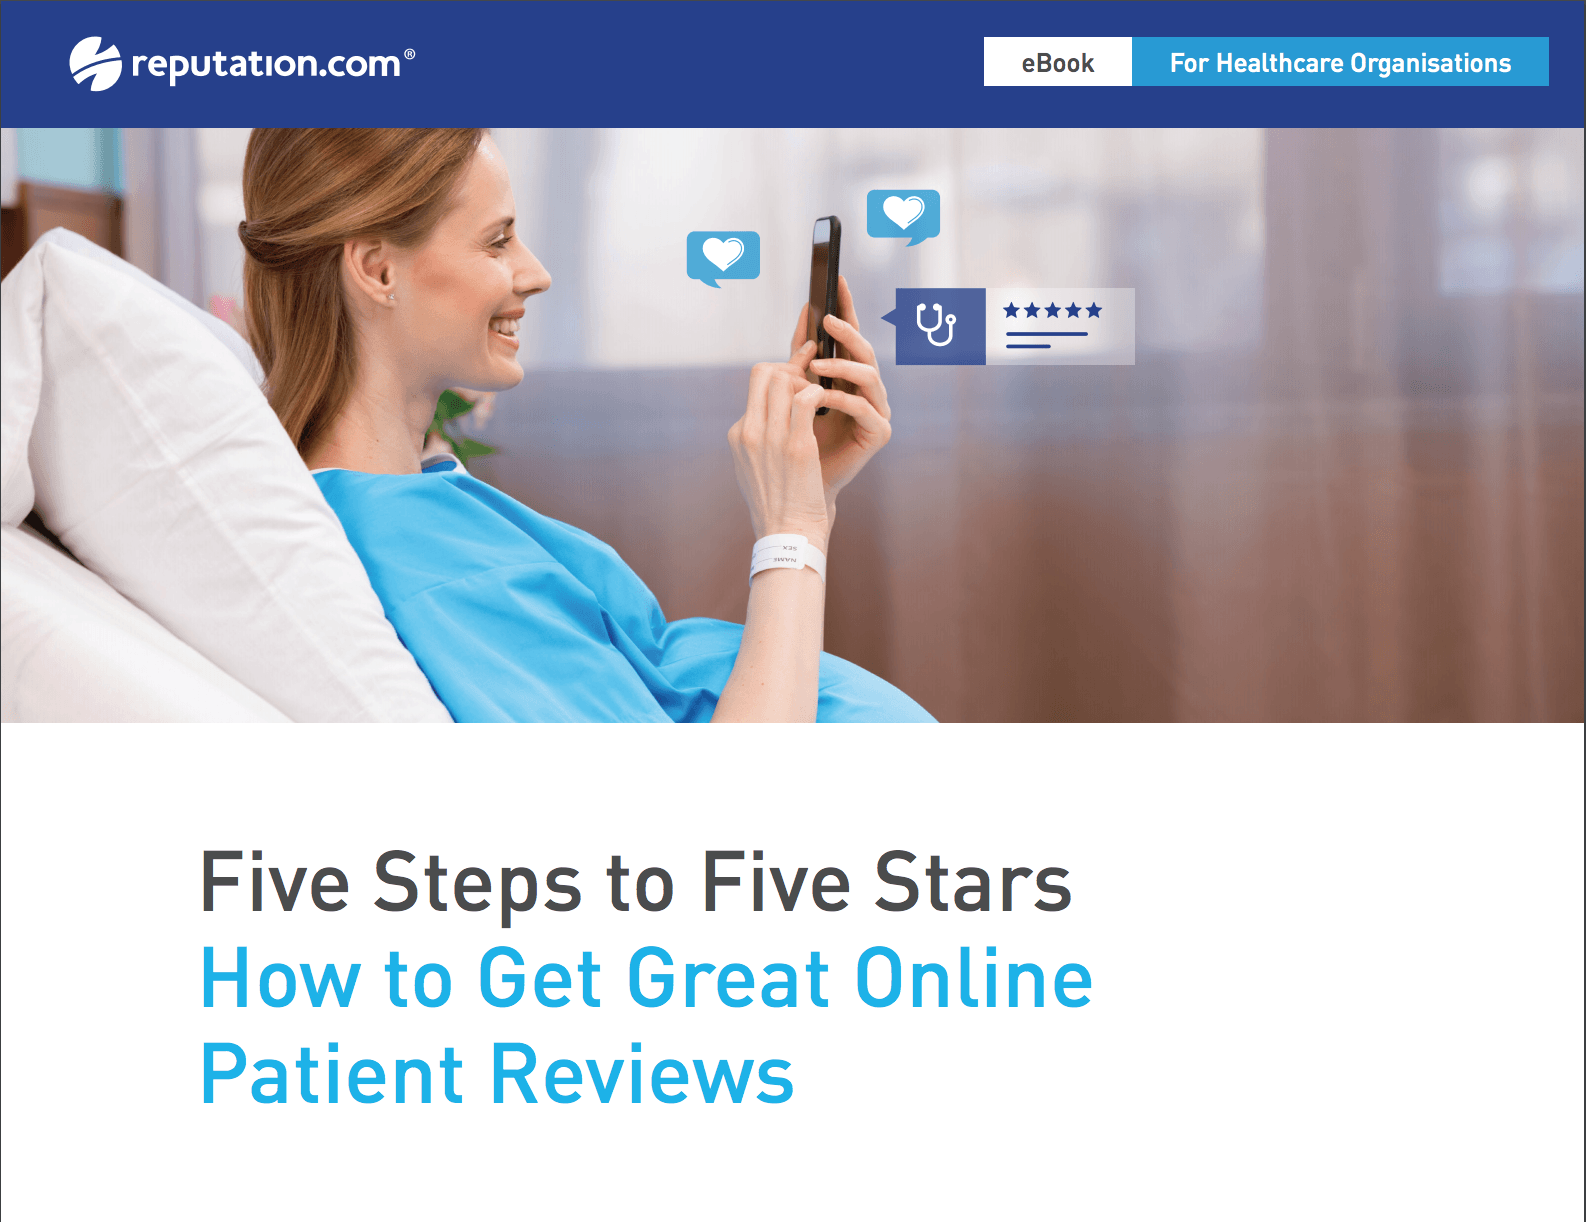 5 Steps to 5 Stars: How to Get Great Online Patient Reviews